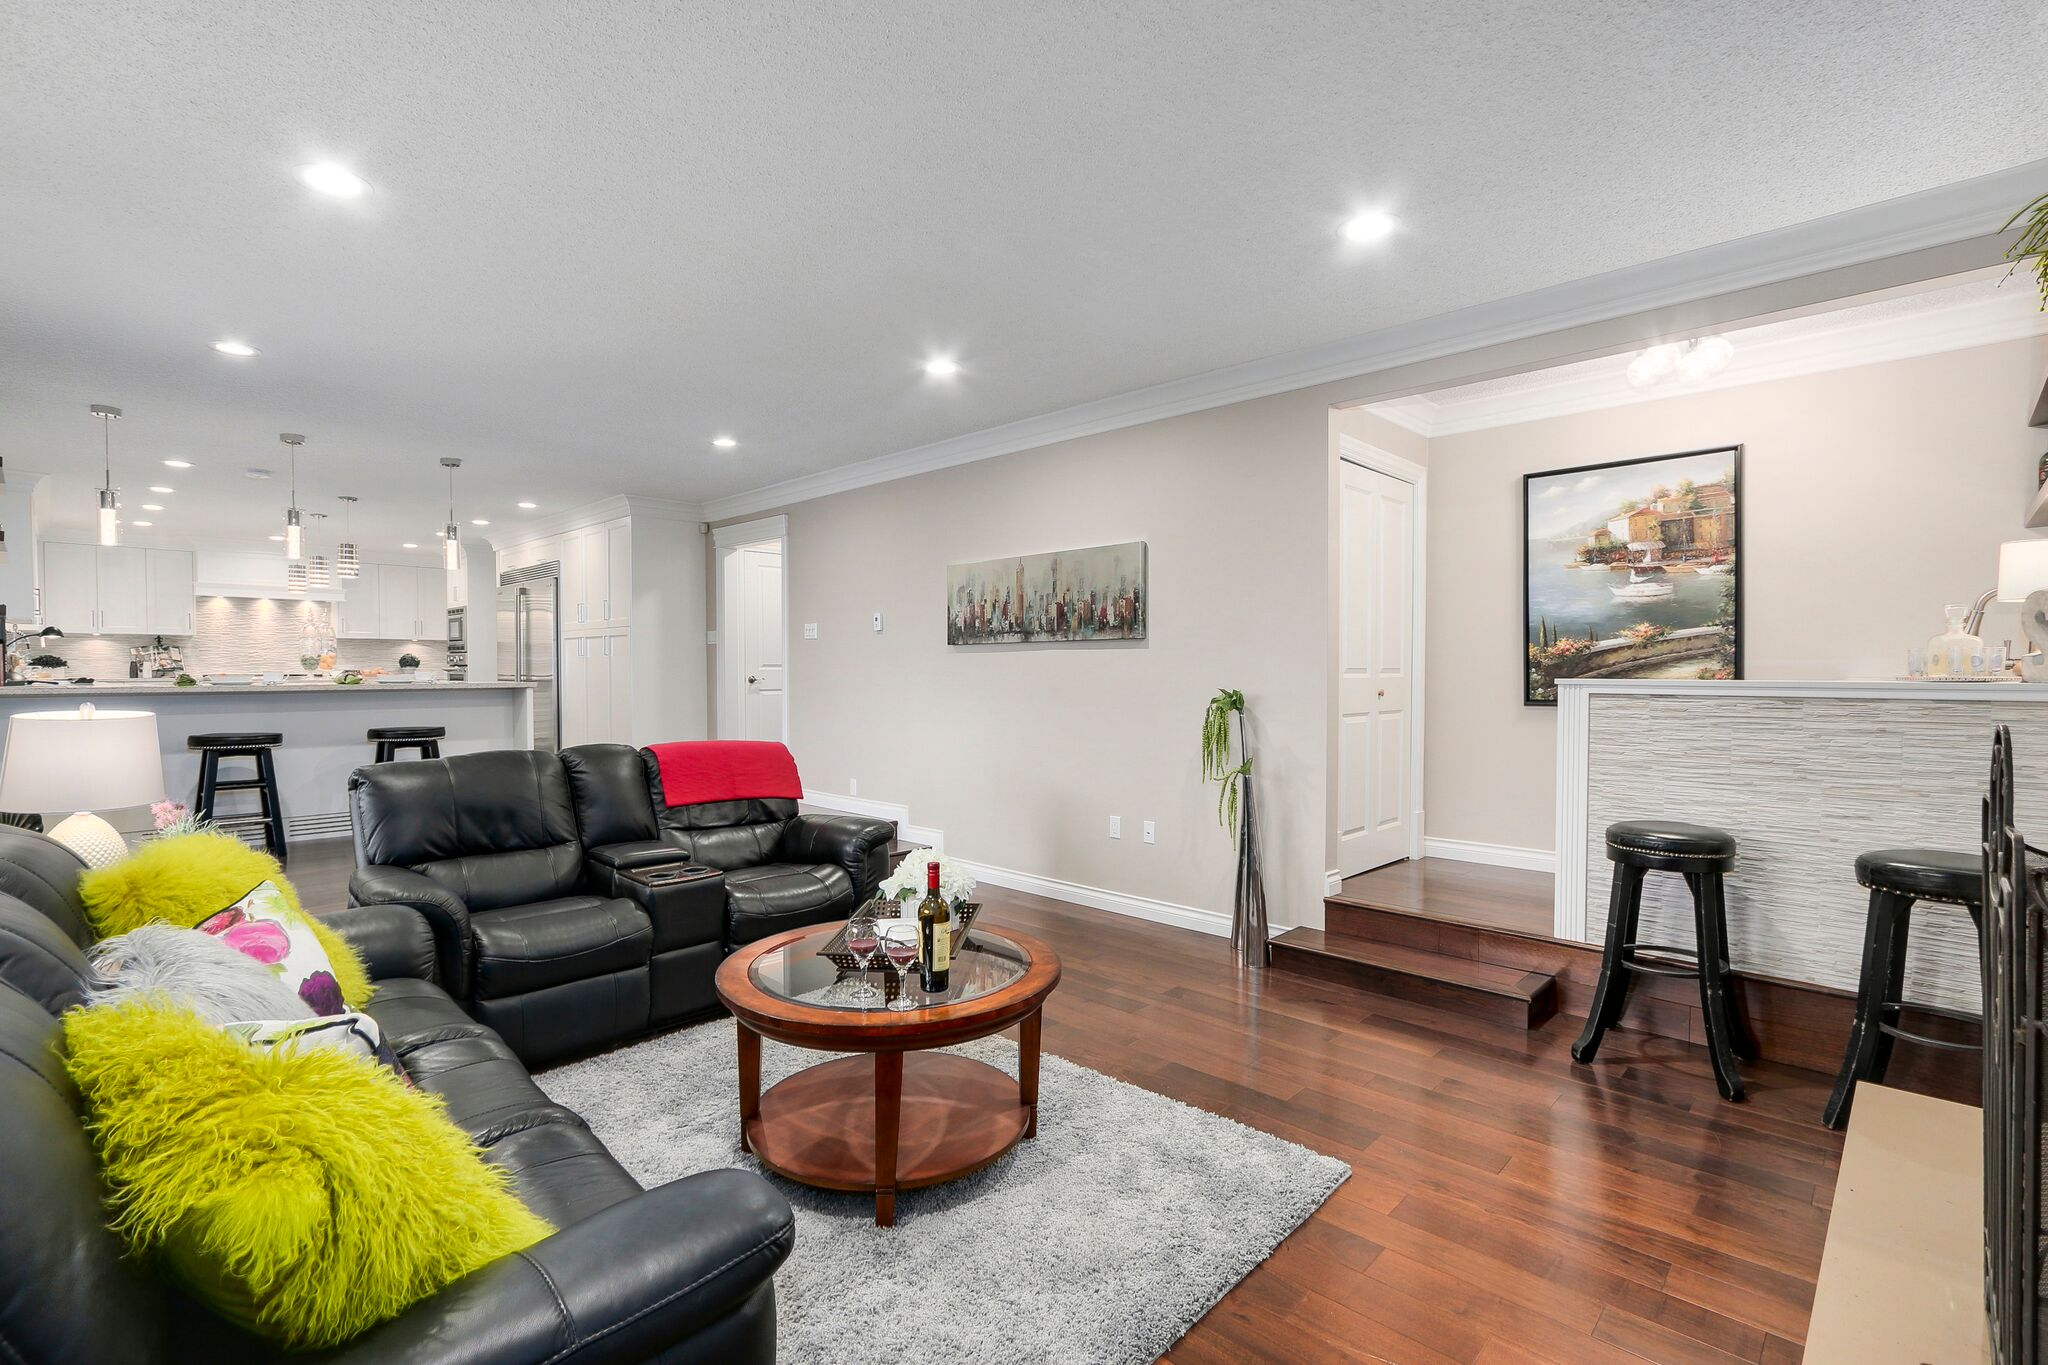 Luxury Family Room & Bar Renovation in Coquitlam